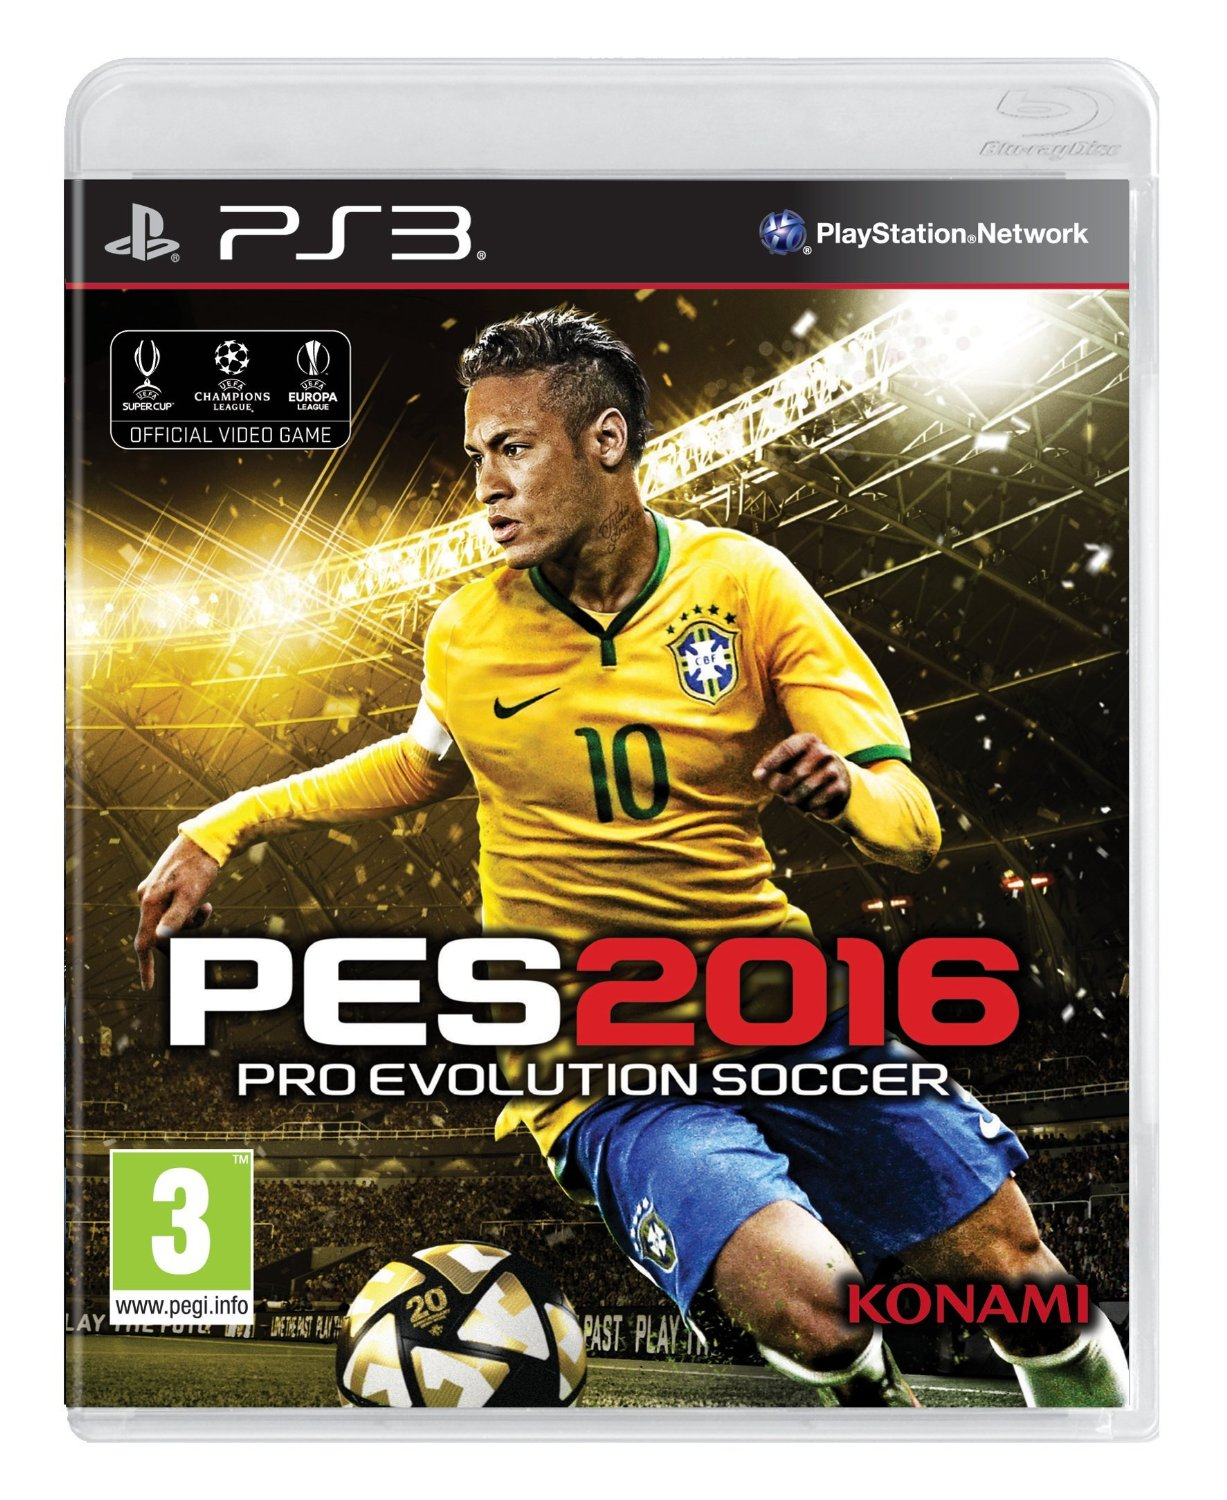 PES Pro-Evolution Soccer 2016 for PS3 Português e Español